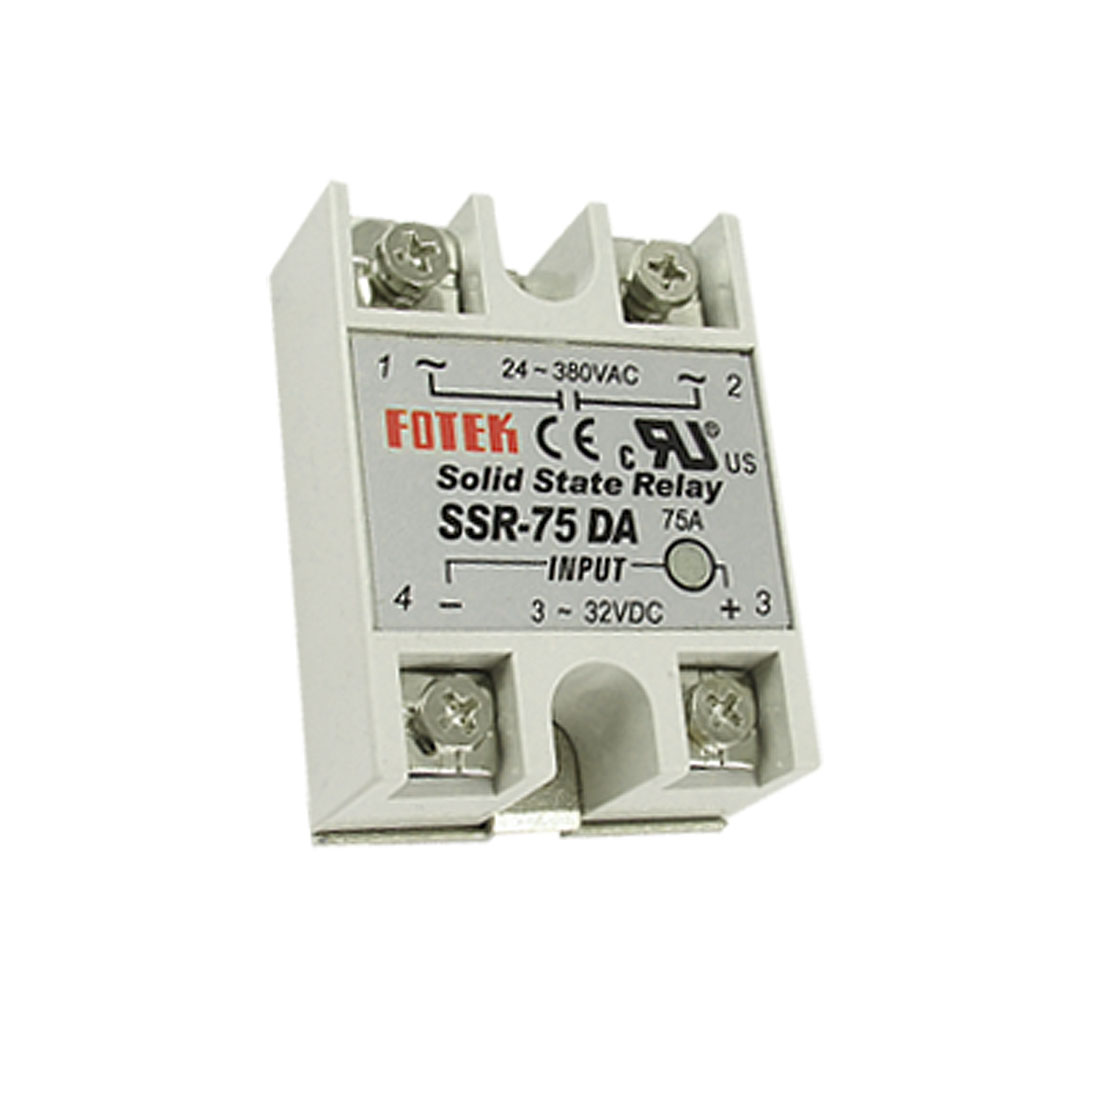 DC to AC Single Phase Solid State Relay SSR-75DA 75A 3-32V DC 24-380V AC